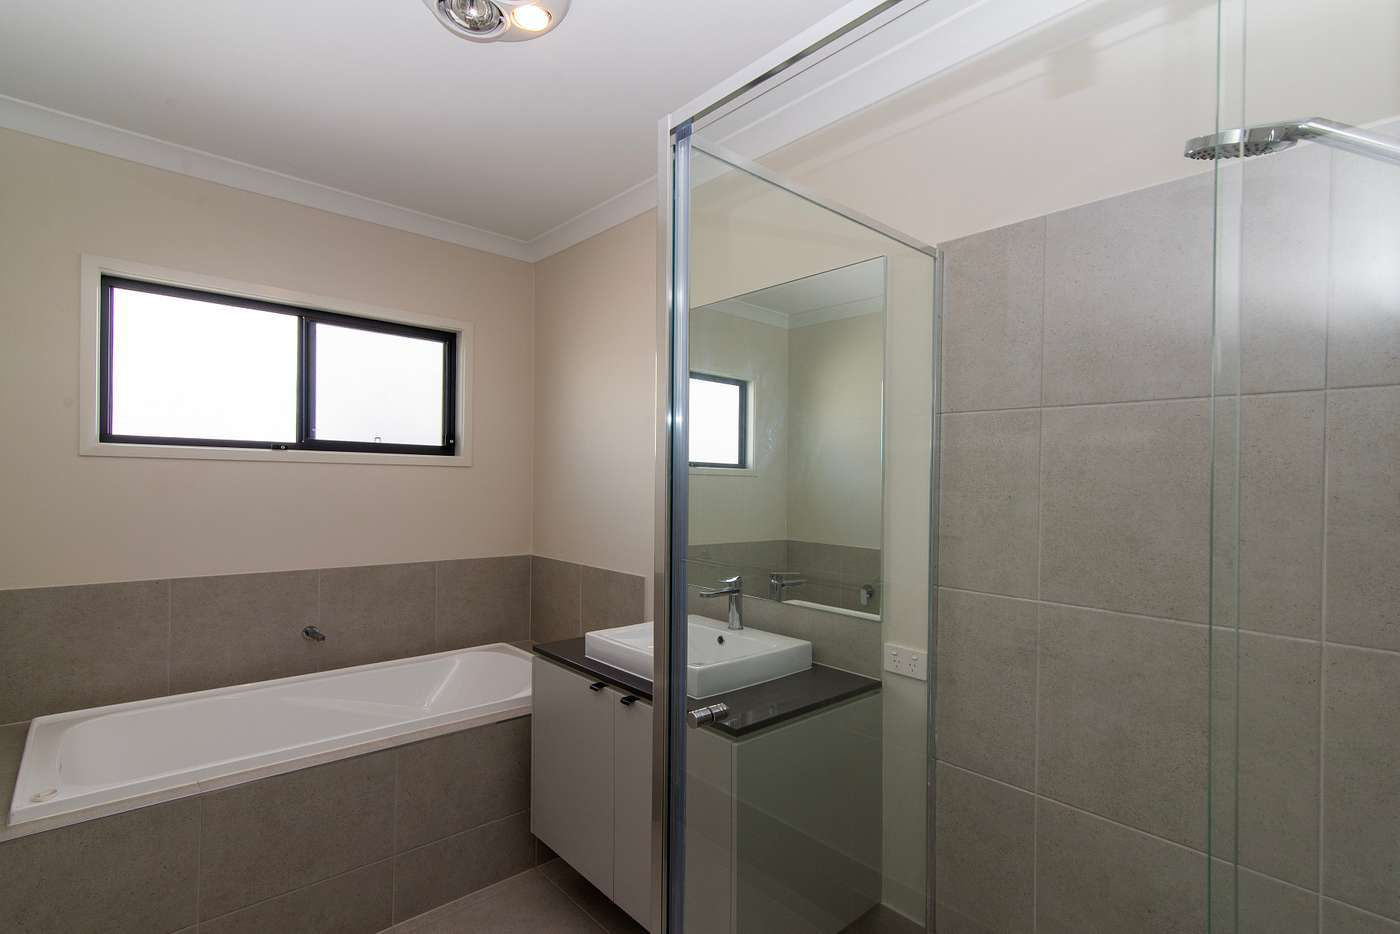 Sixth view of Homely house listing, 15 Olearia Street, Coomera QLD 4209